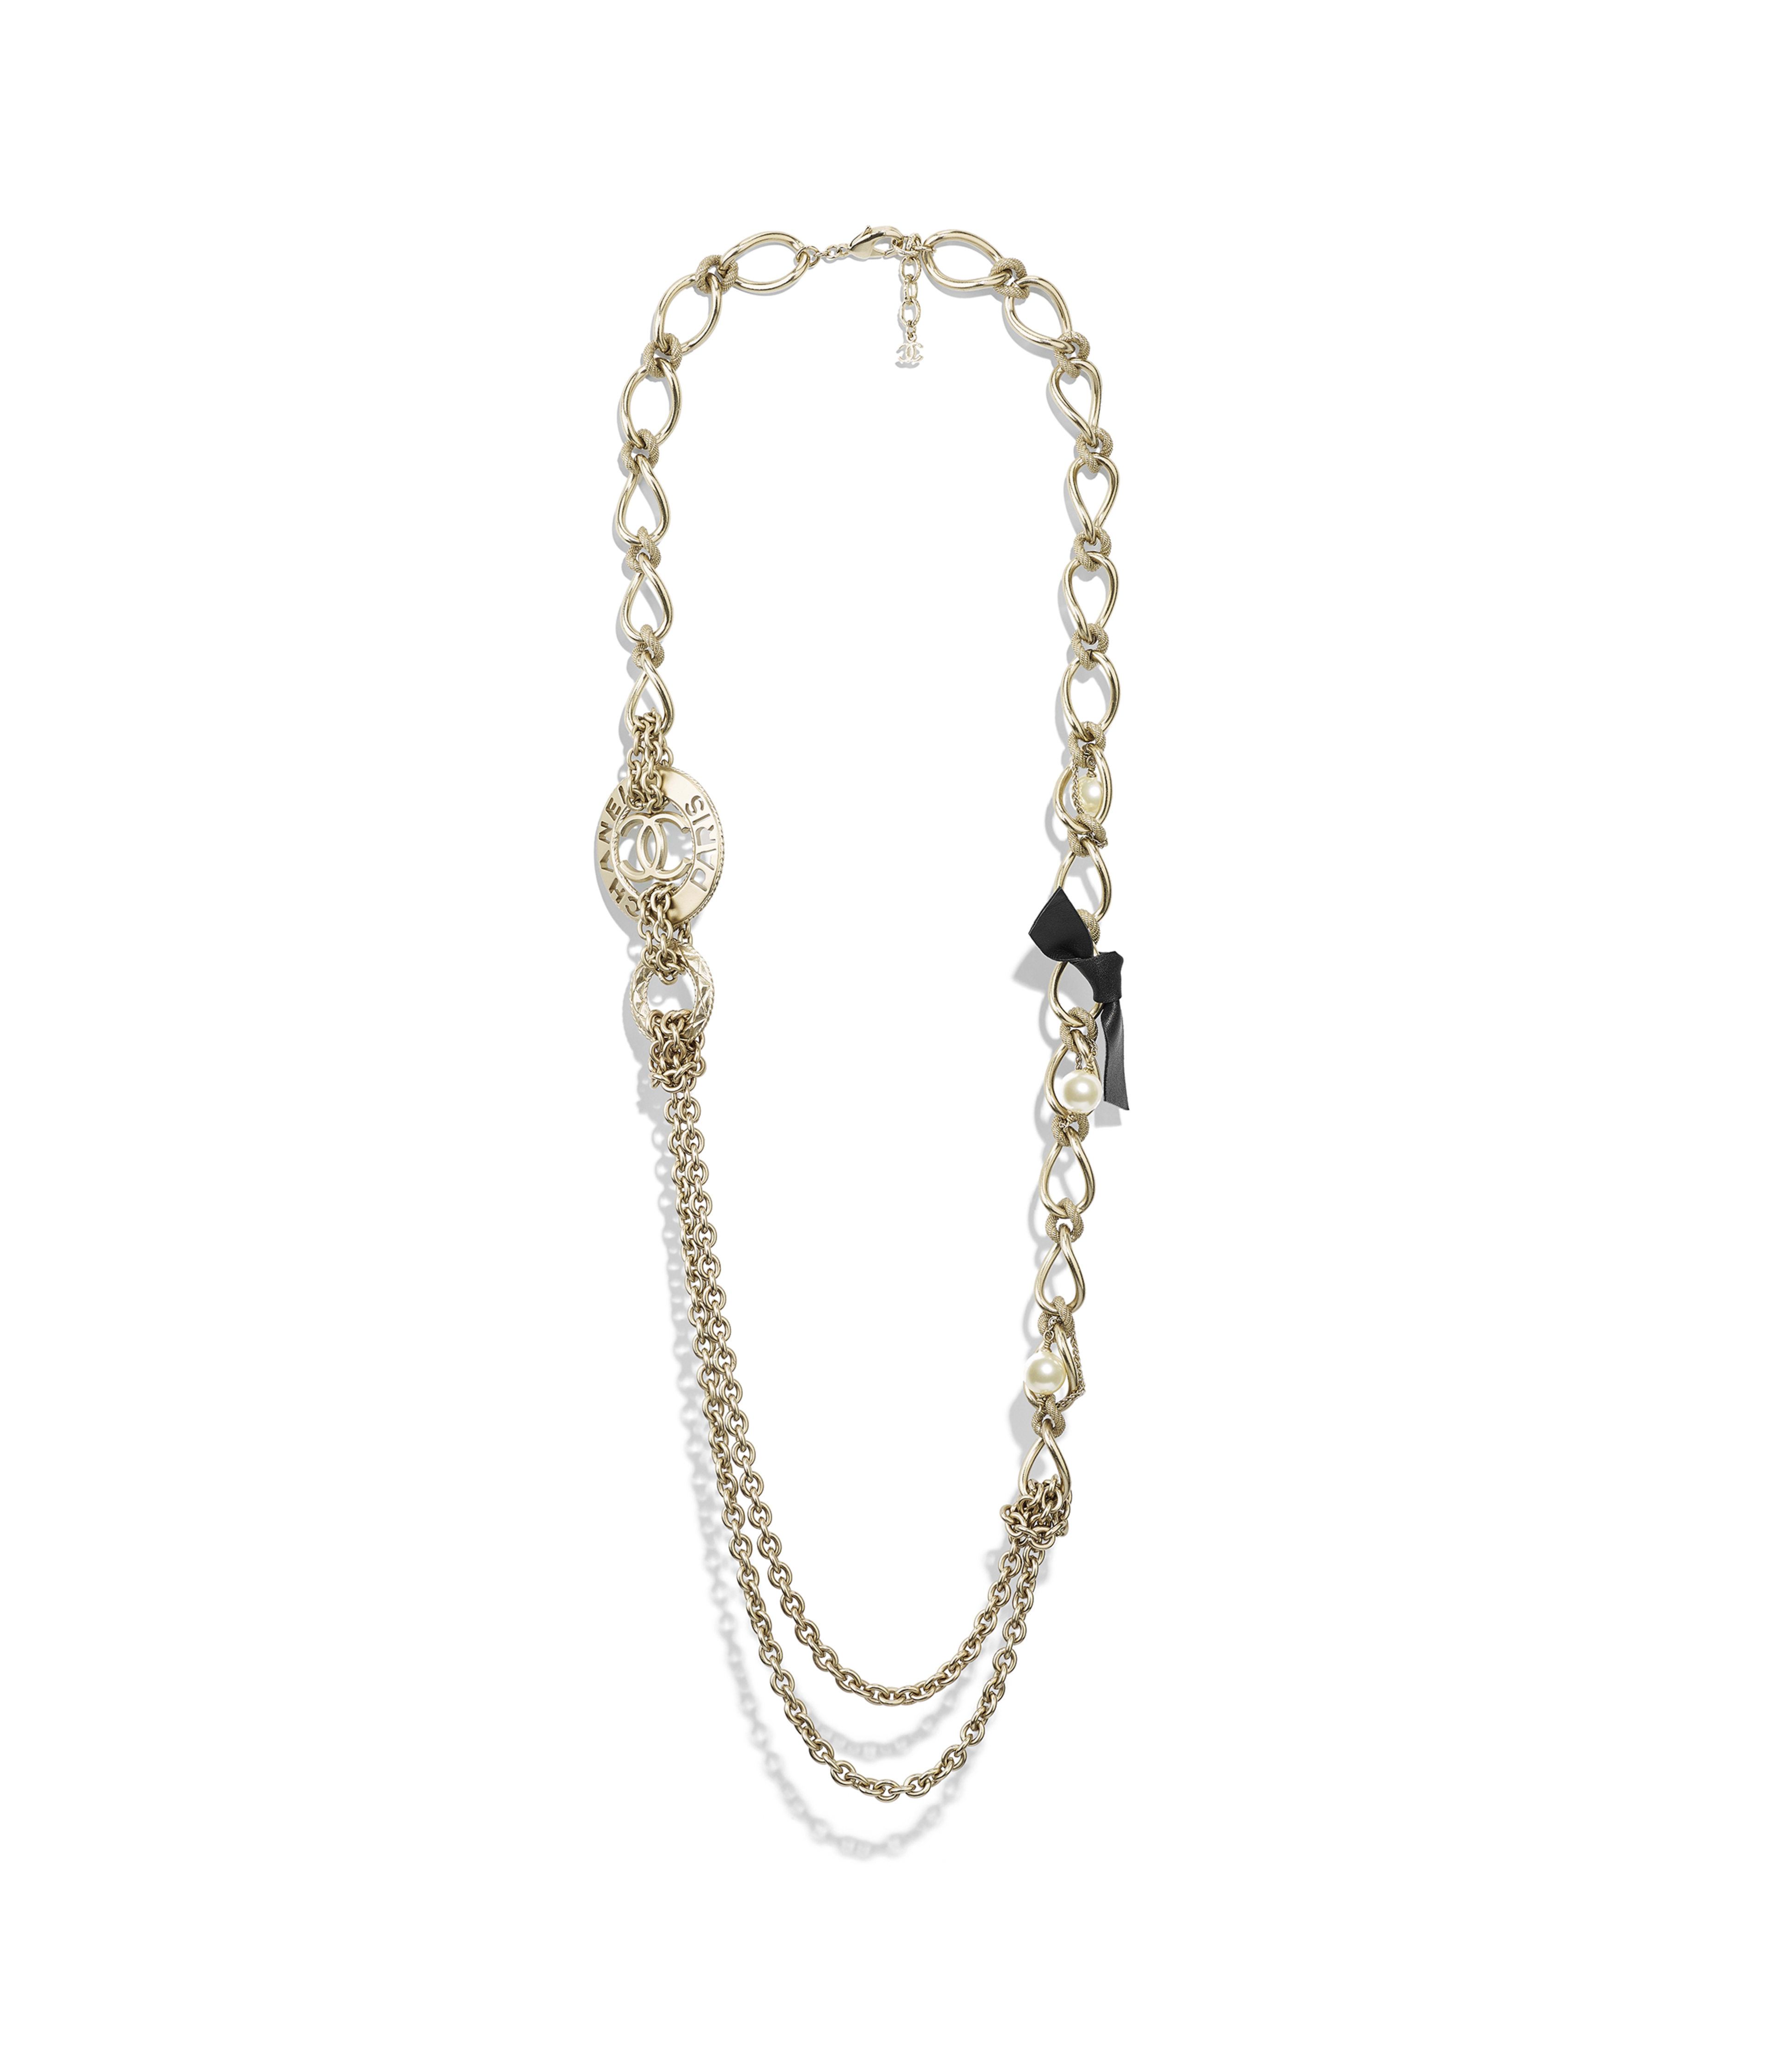 Necklaces - Costume jewelry | CHANEL